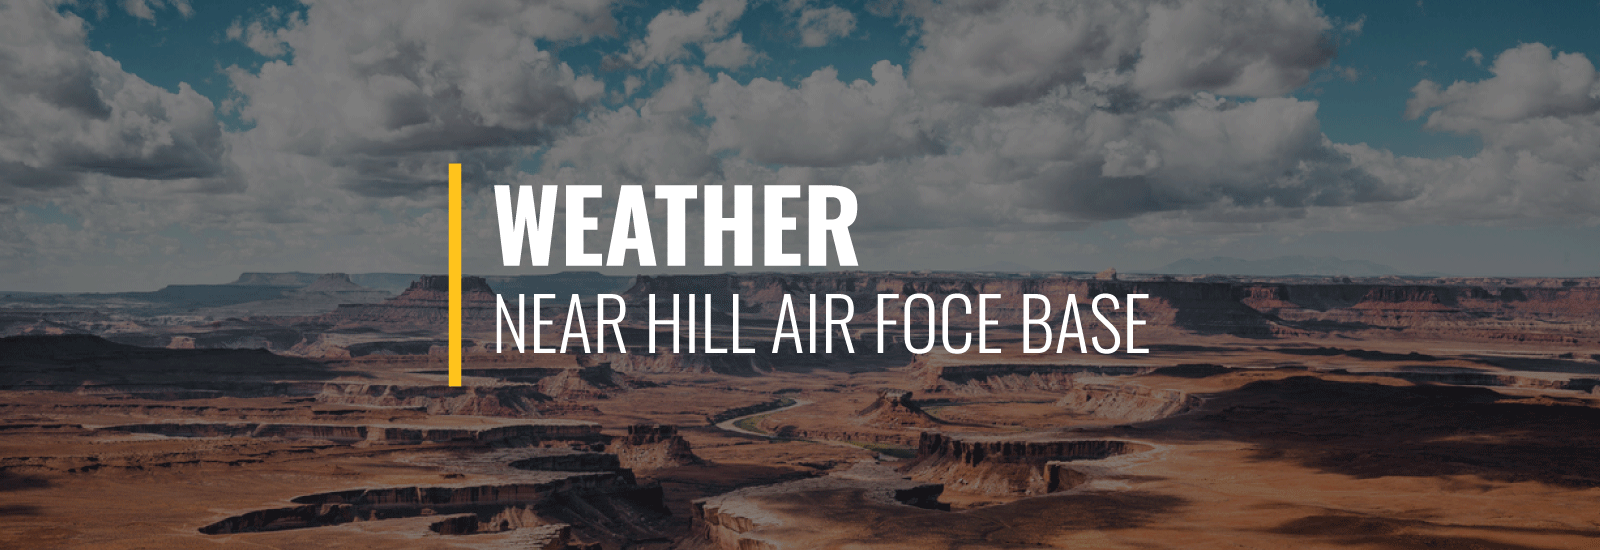 Hill Air Force Base Weather